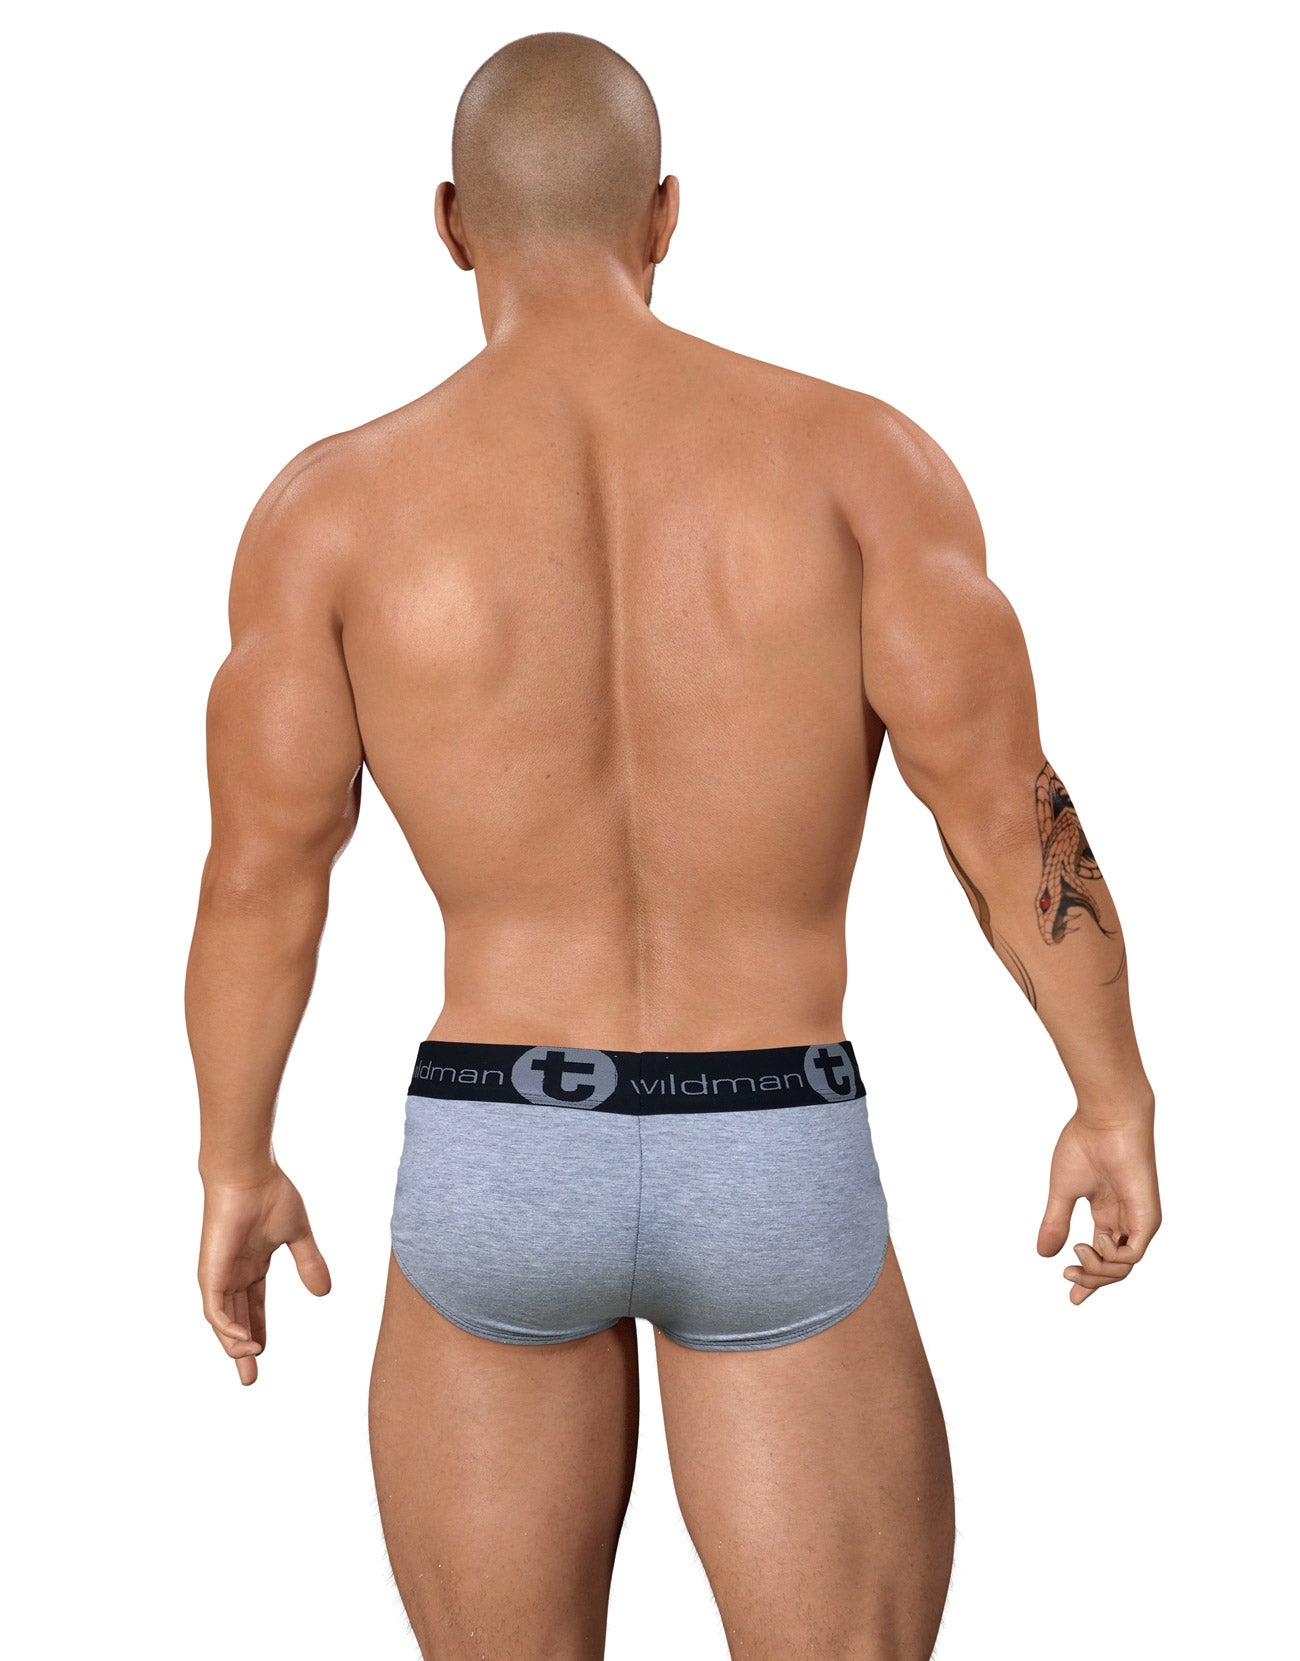 WildmanT Stretch Cotton Big Boy Pouch Brief Gray/Black - Big Penis Underwear, WildmanT - WildmanT